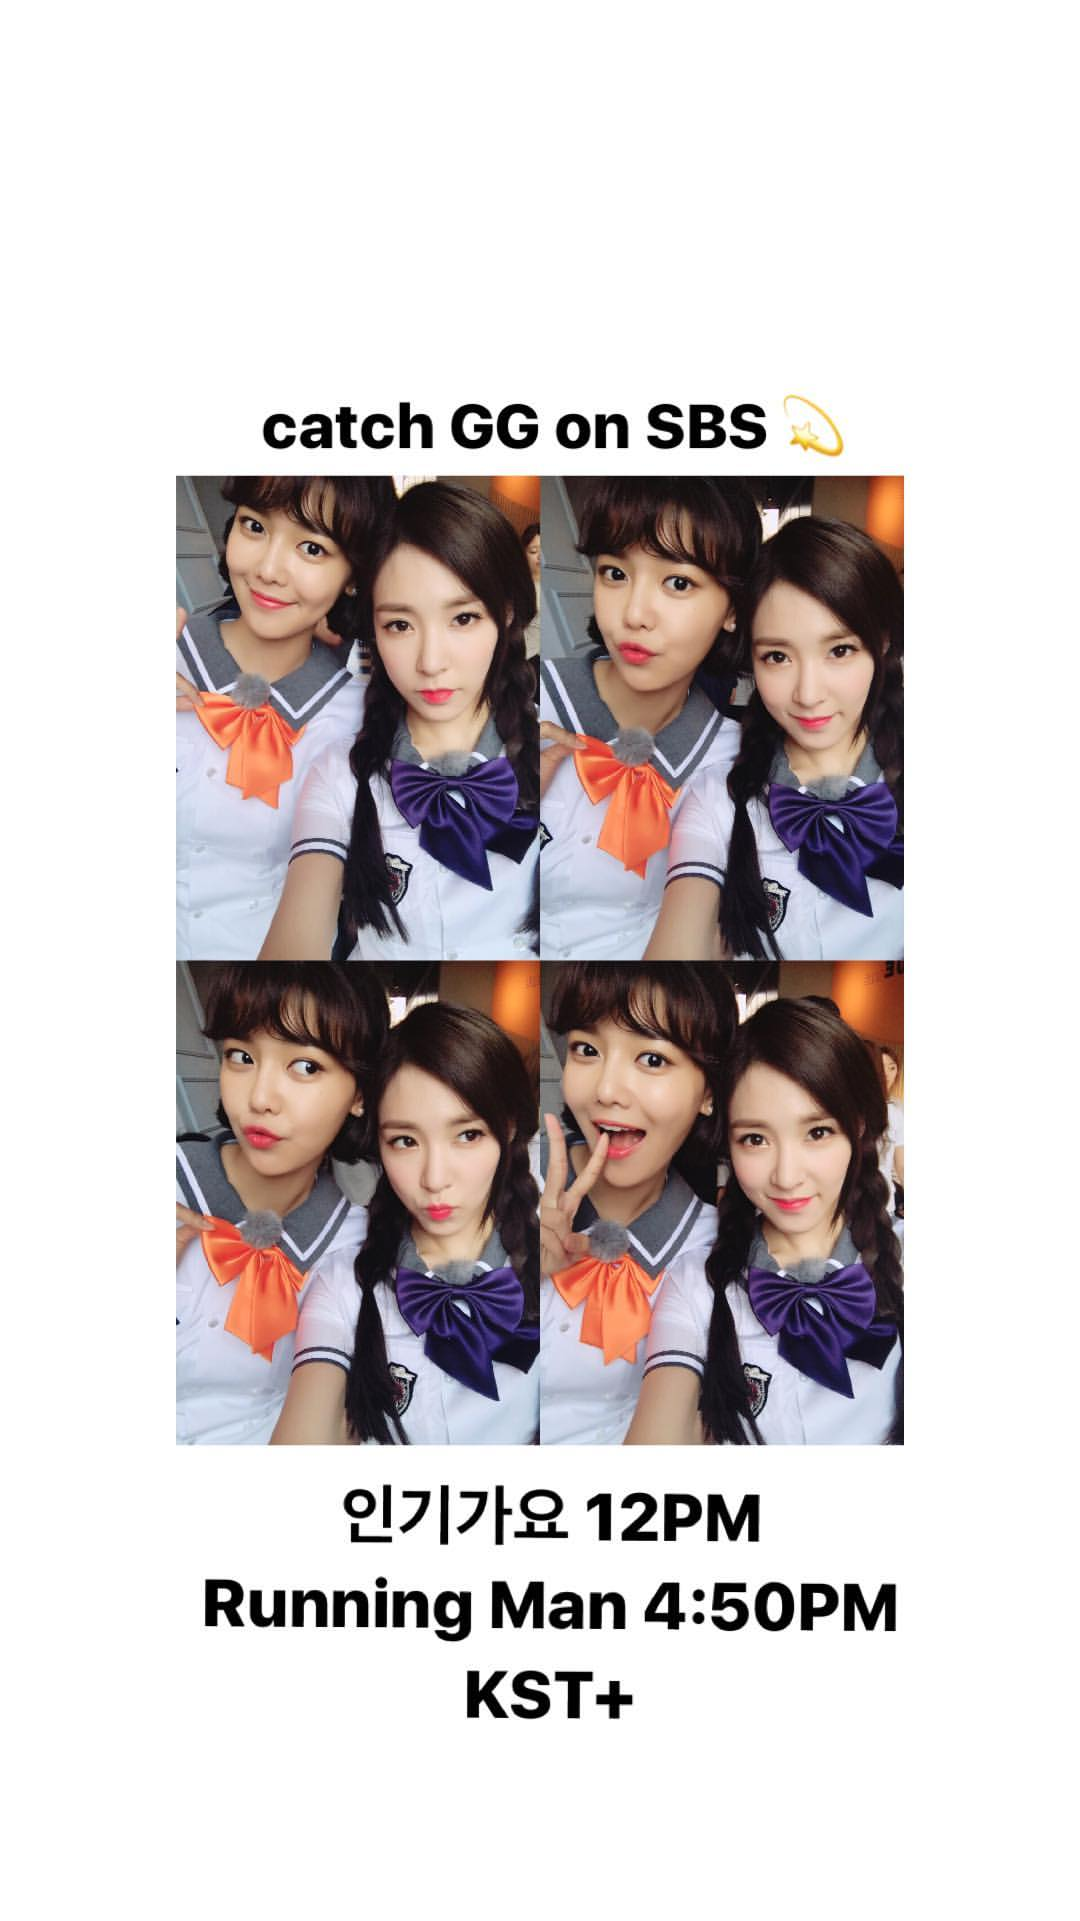 [INSTAGRAM STORY] xolovestephi: catch GG on SBS �� 인기가요 12PM Running Man 4:50PM KST+ https://t.co/7mzdg9WZuA https://t.co/DQzpshKFjf